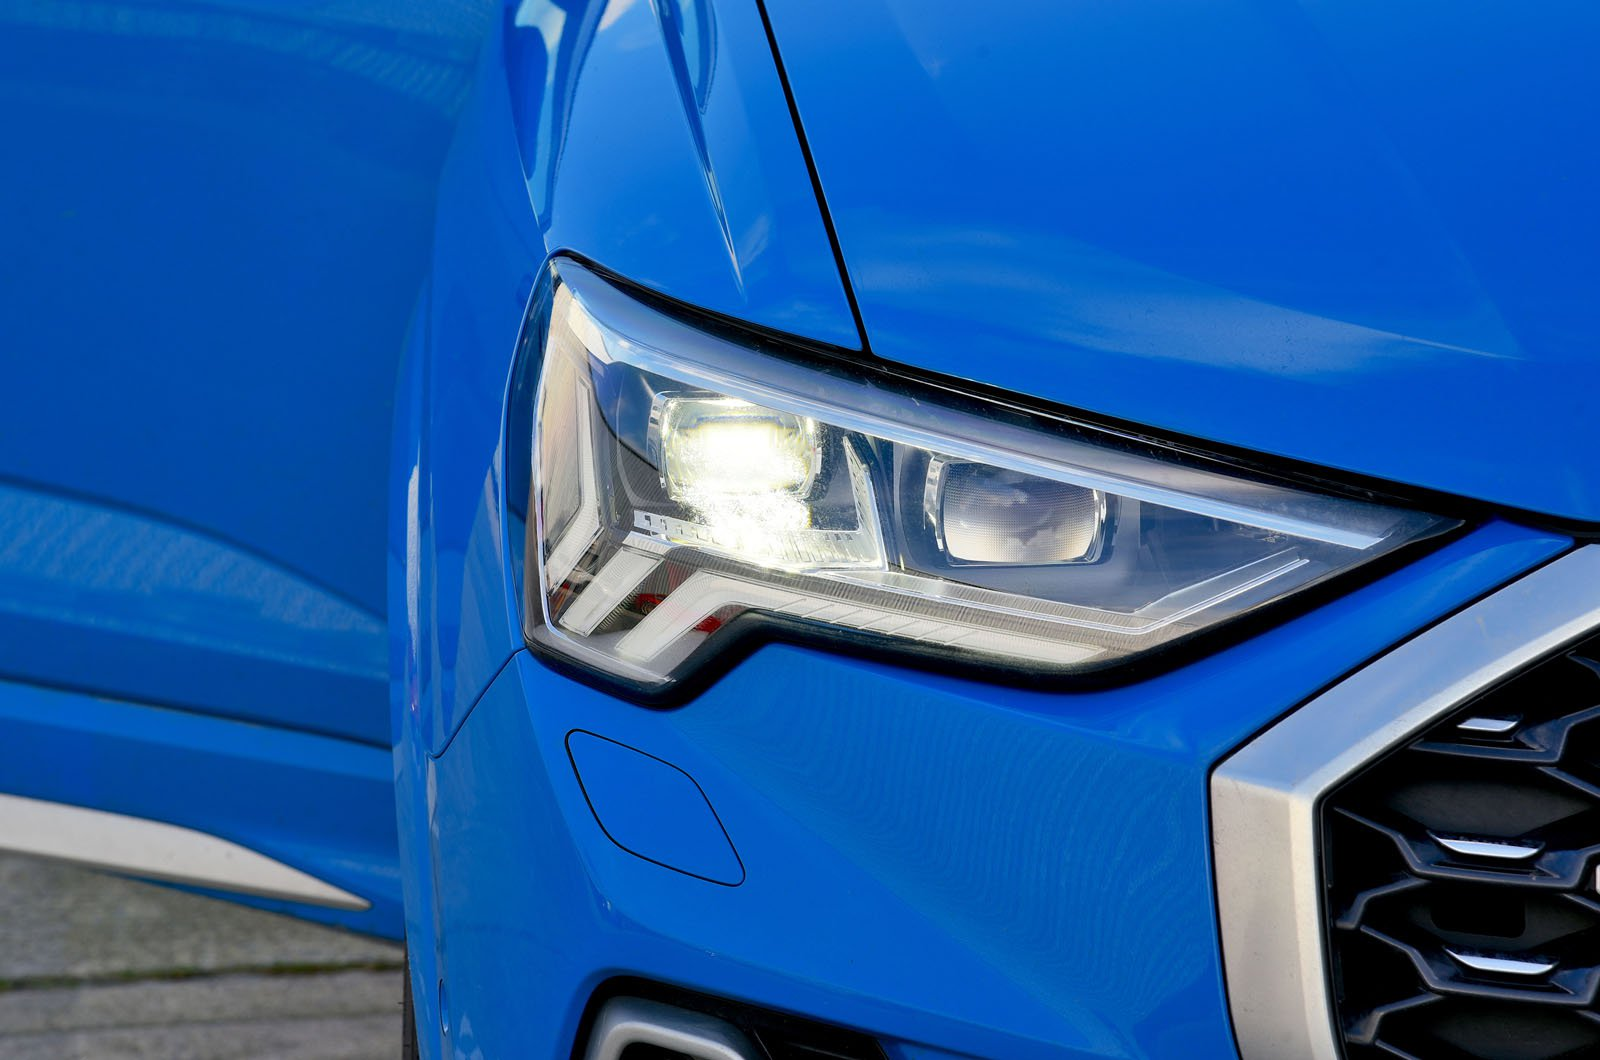 LT Audi Q3 Sportback Matrix LED headlight